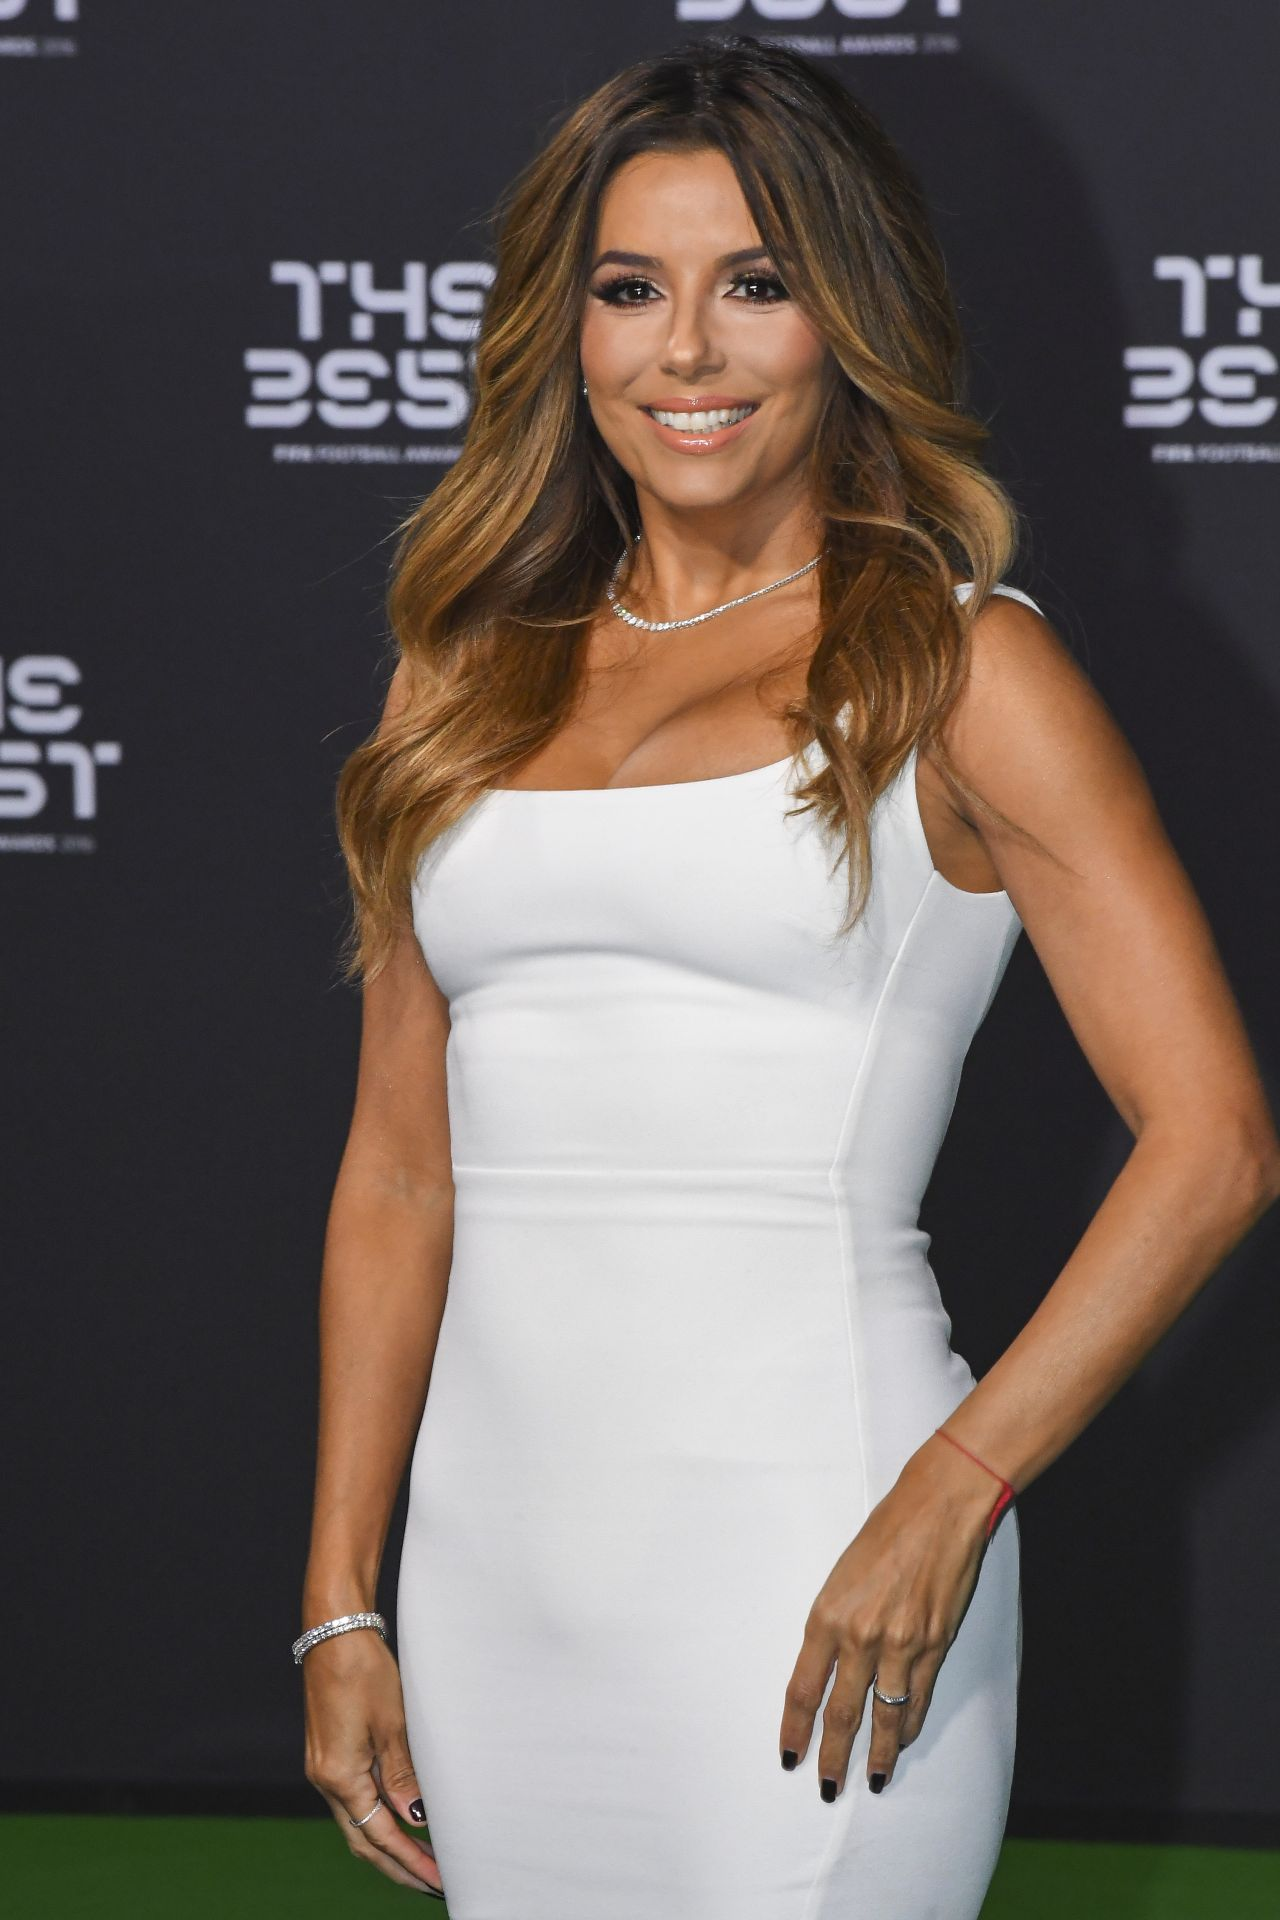 Eva Longoria STUNNING Tight White Dress